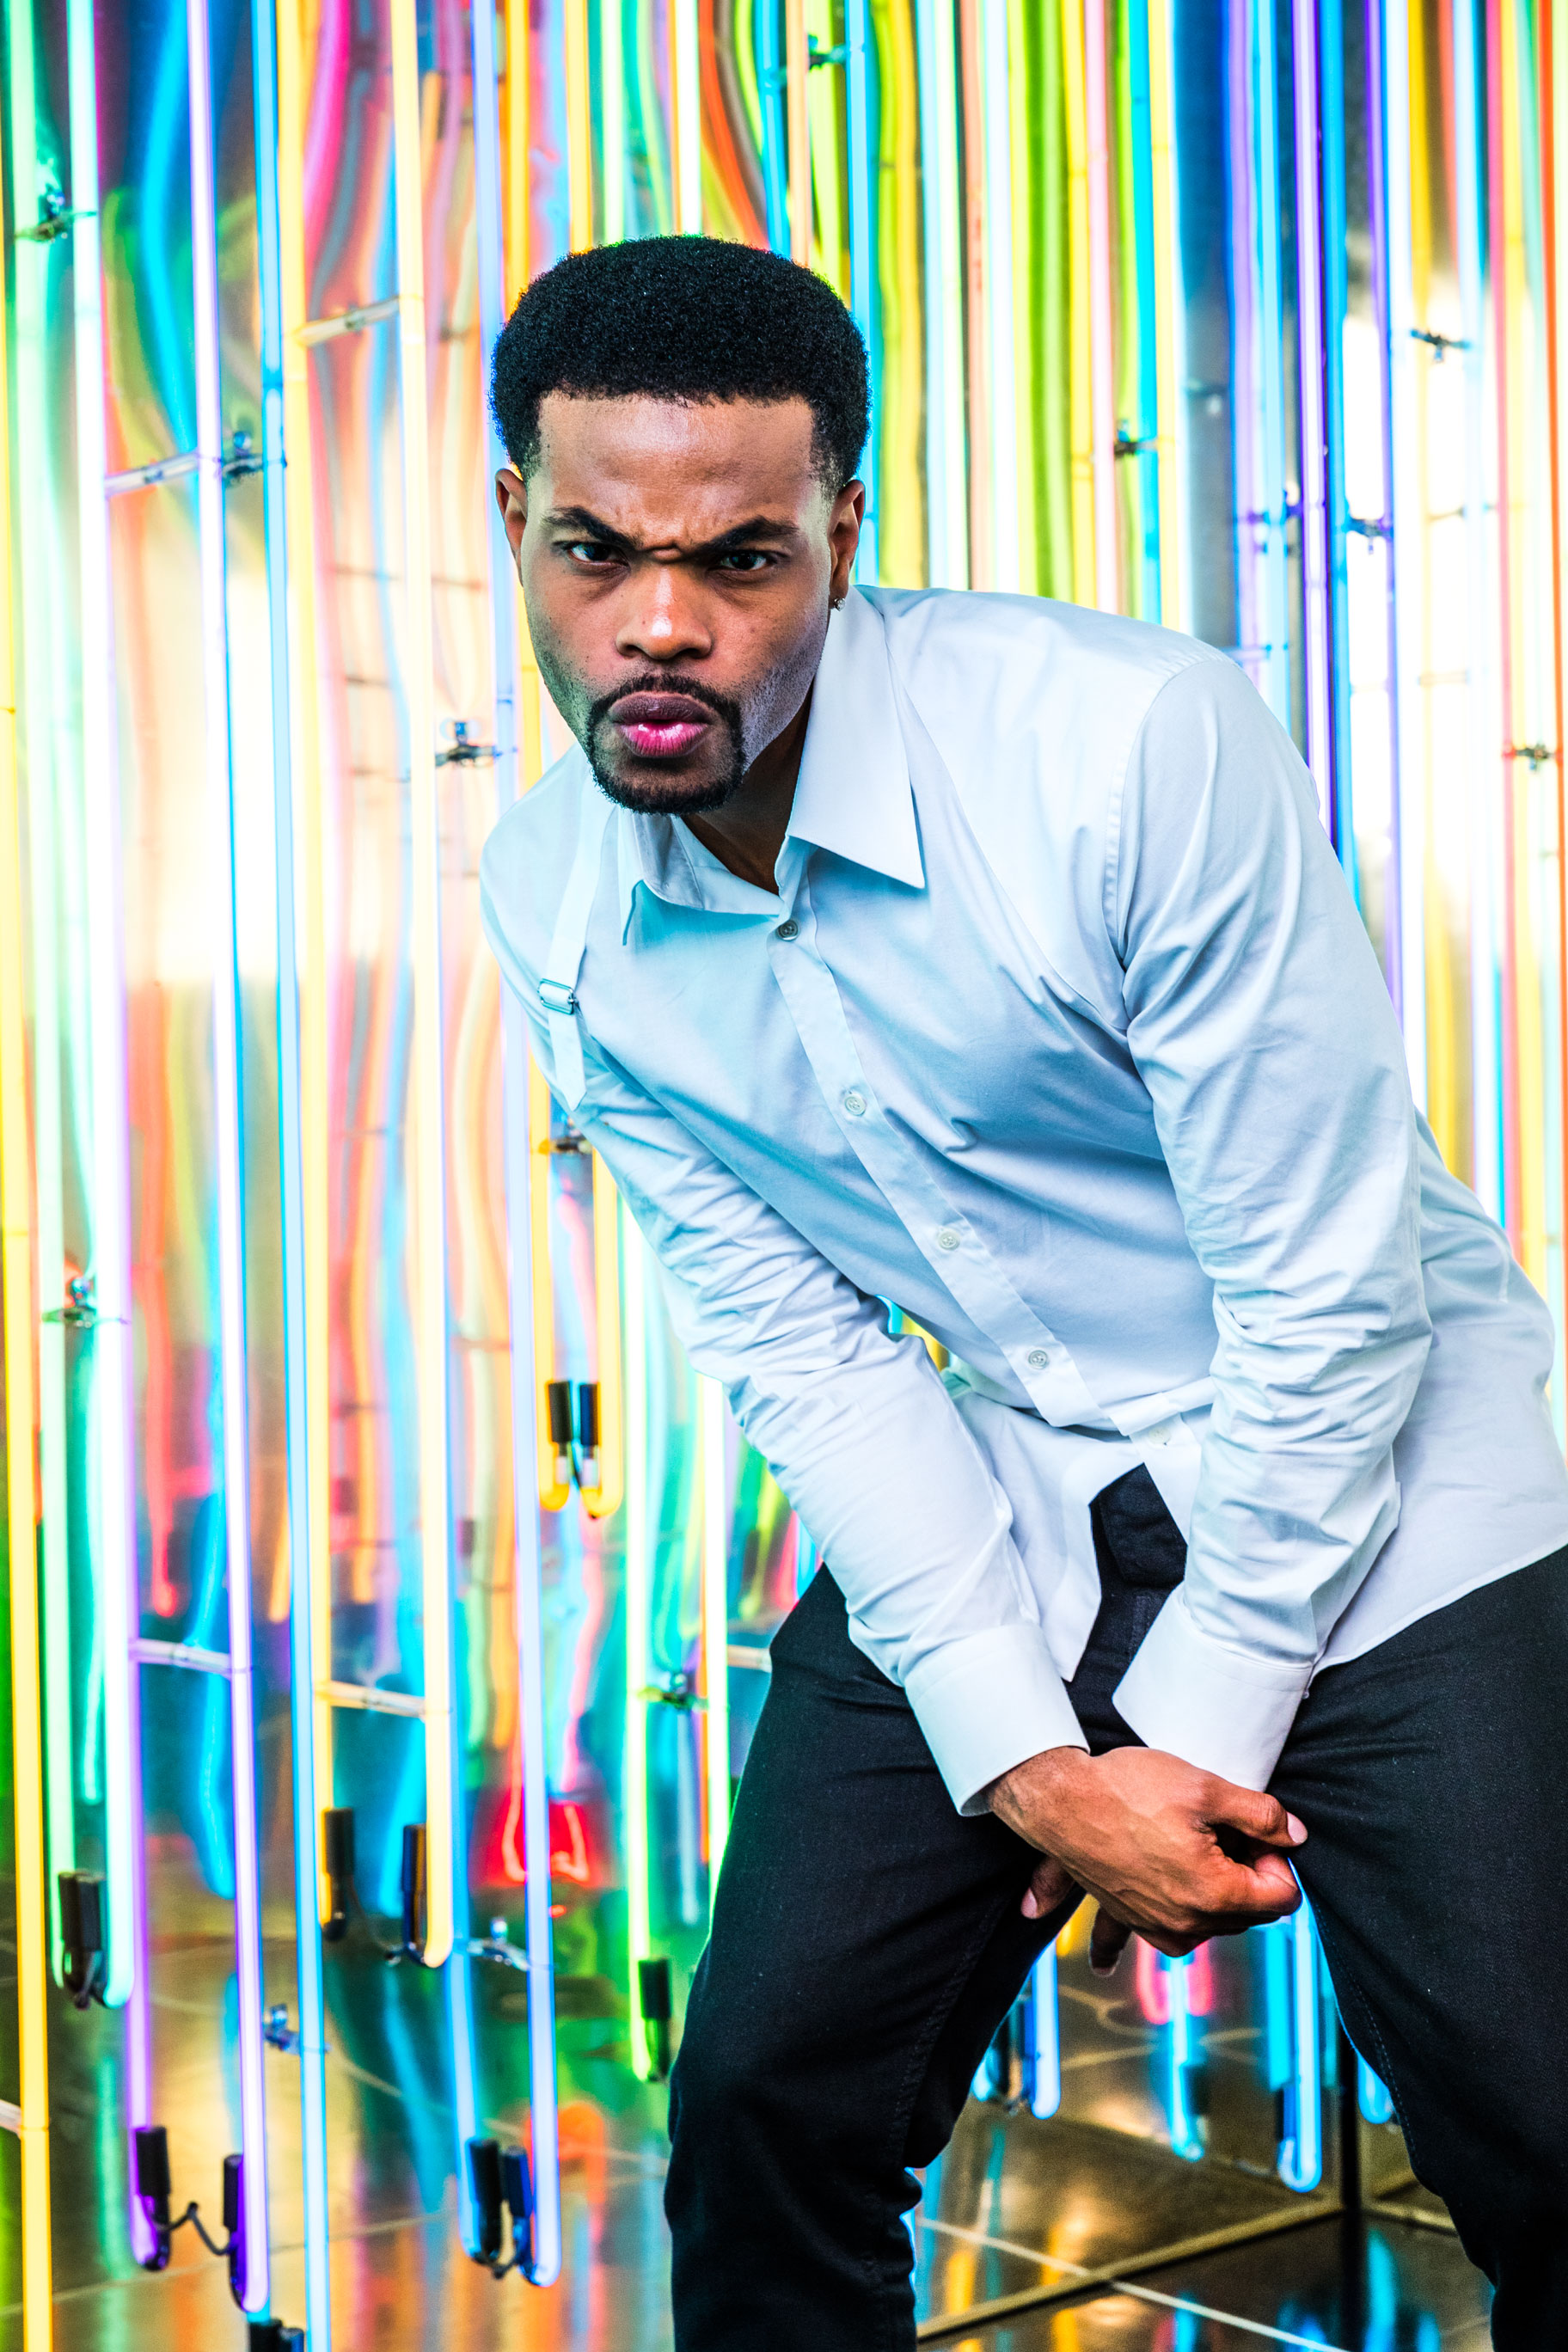 031.5_3944_KingBach_Photos_by_marcroyce_v1